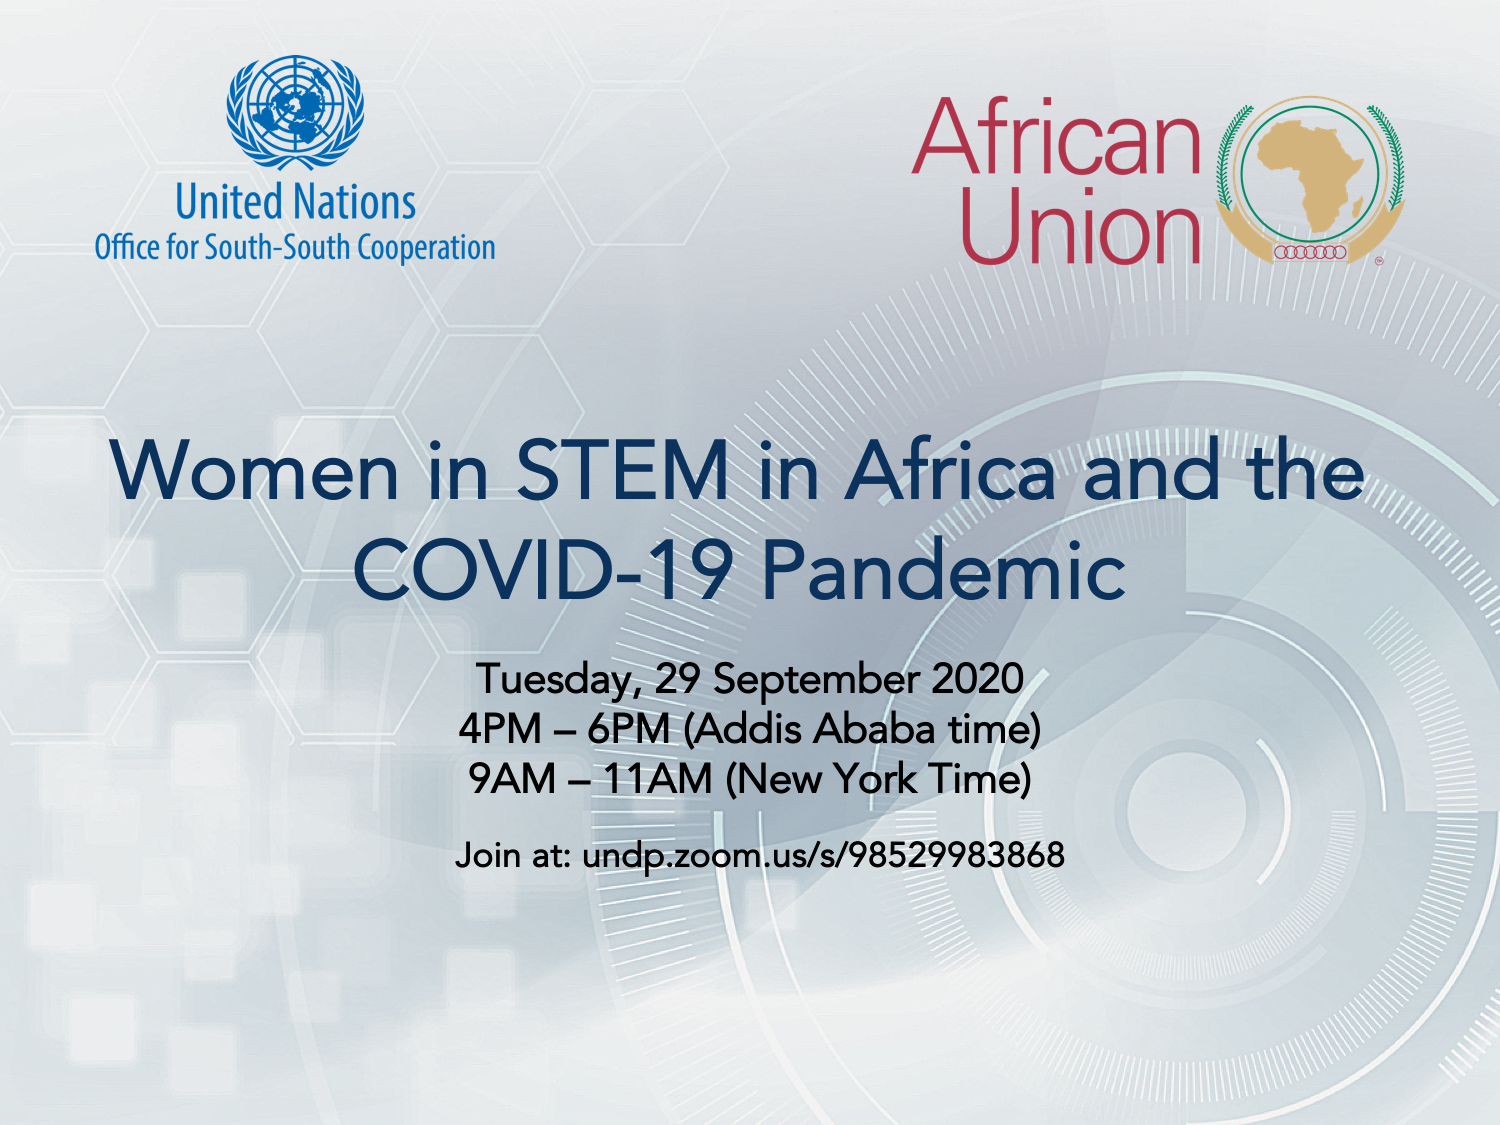 Women in STEM in Africa and the COVID-19 Pandemic, 29 September 2020